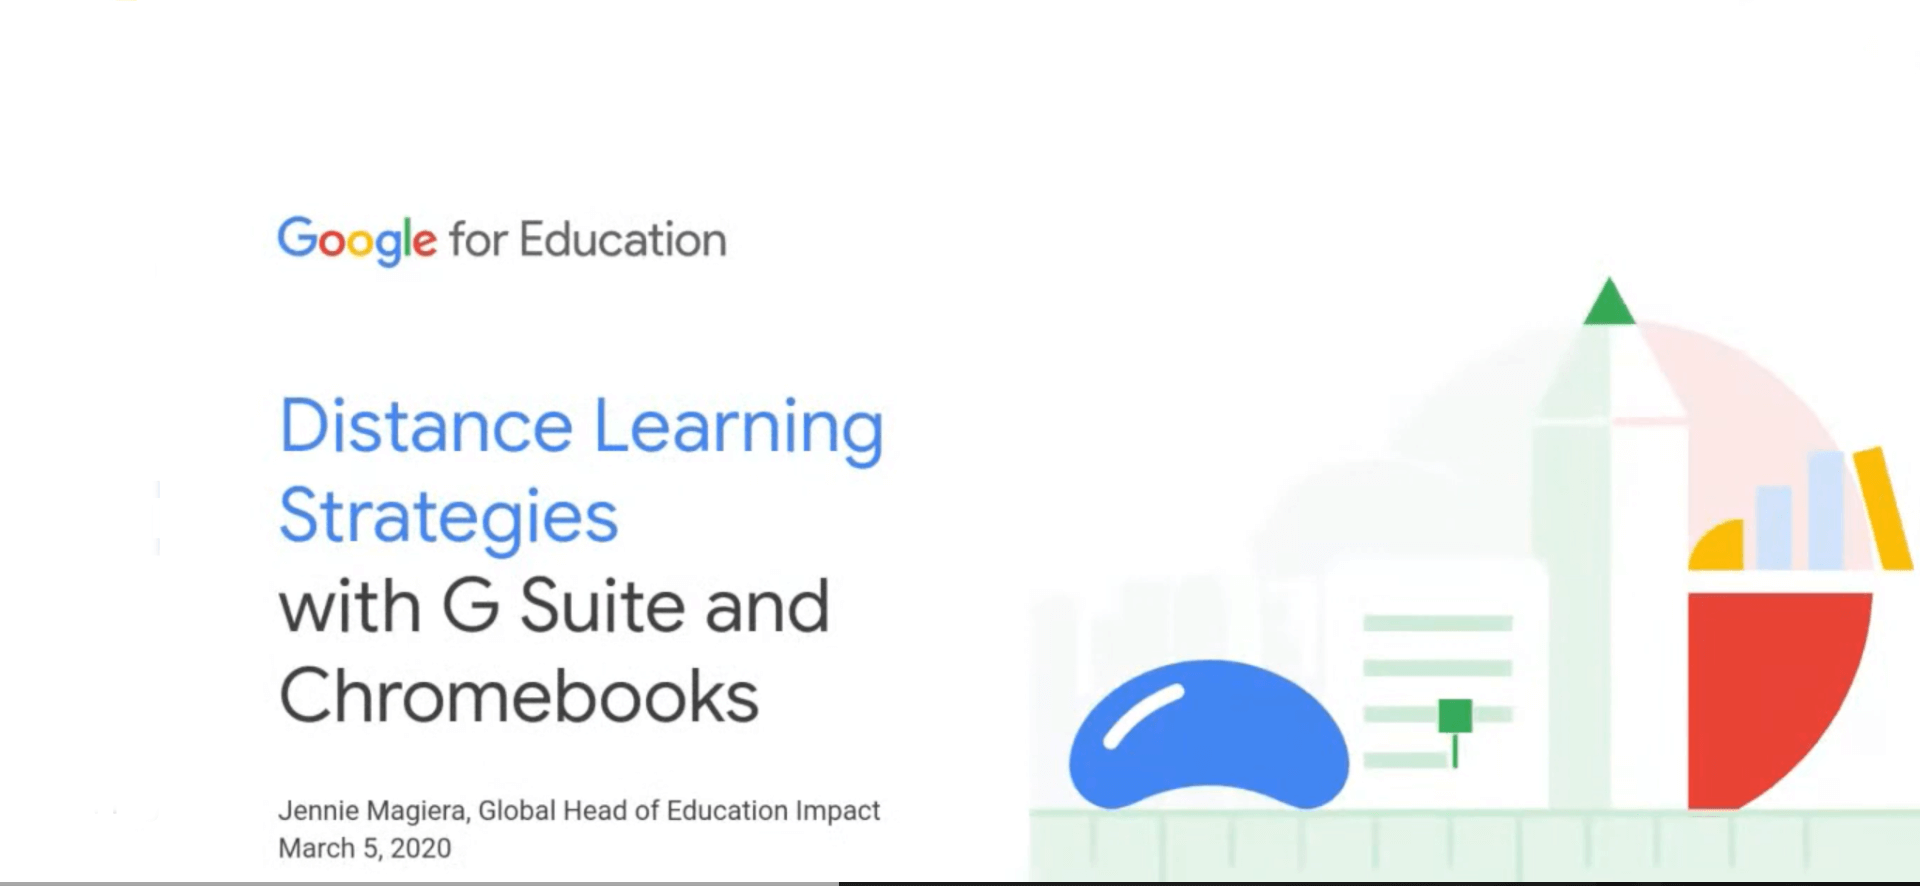 Distance Learning Strategies with G Suite and Chromebooks